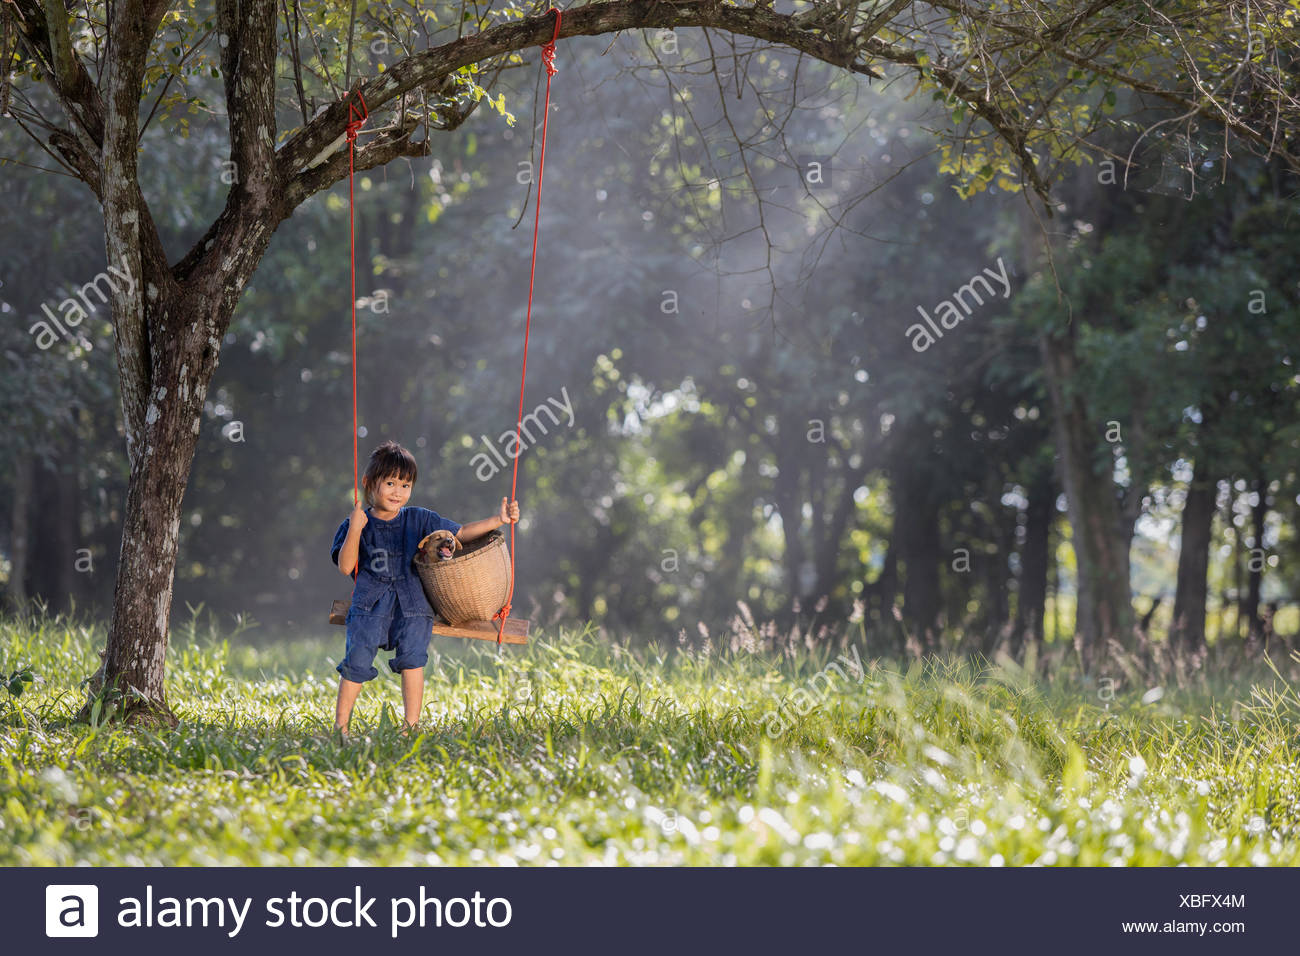 Girl sitting on swing with her dog - Stock Image